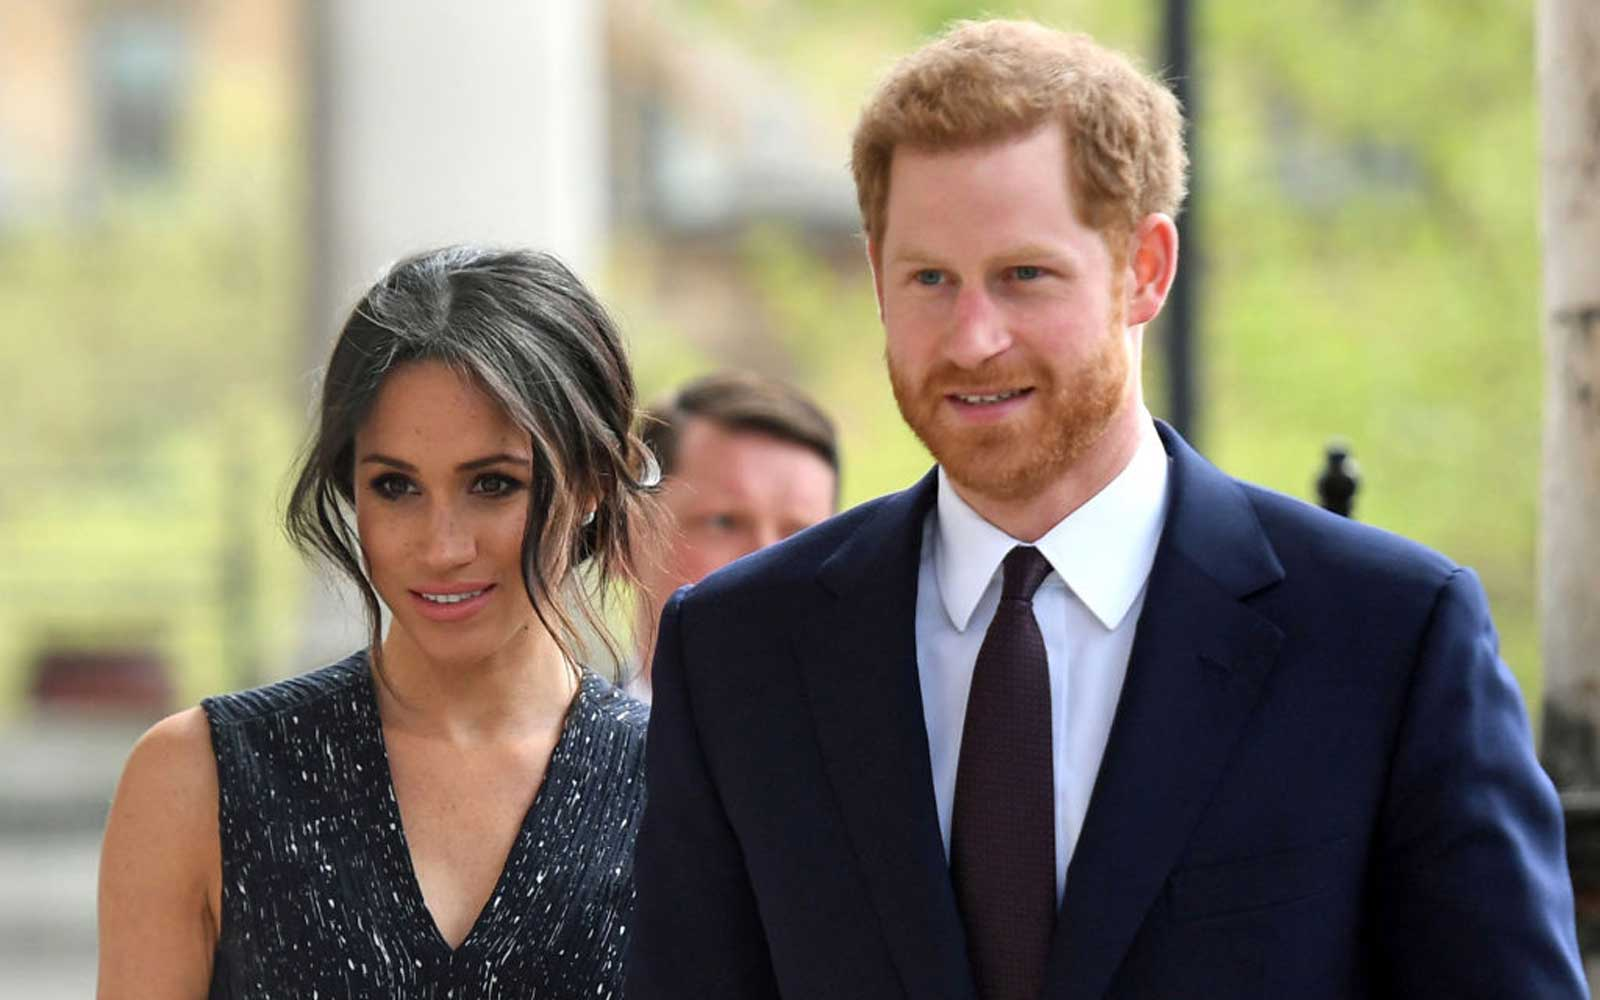 Prince Harry and Meghan Markle's Latest Wedding Detail Is Straight Out of 'Cinderella'